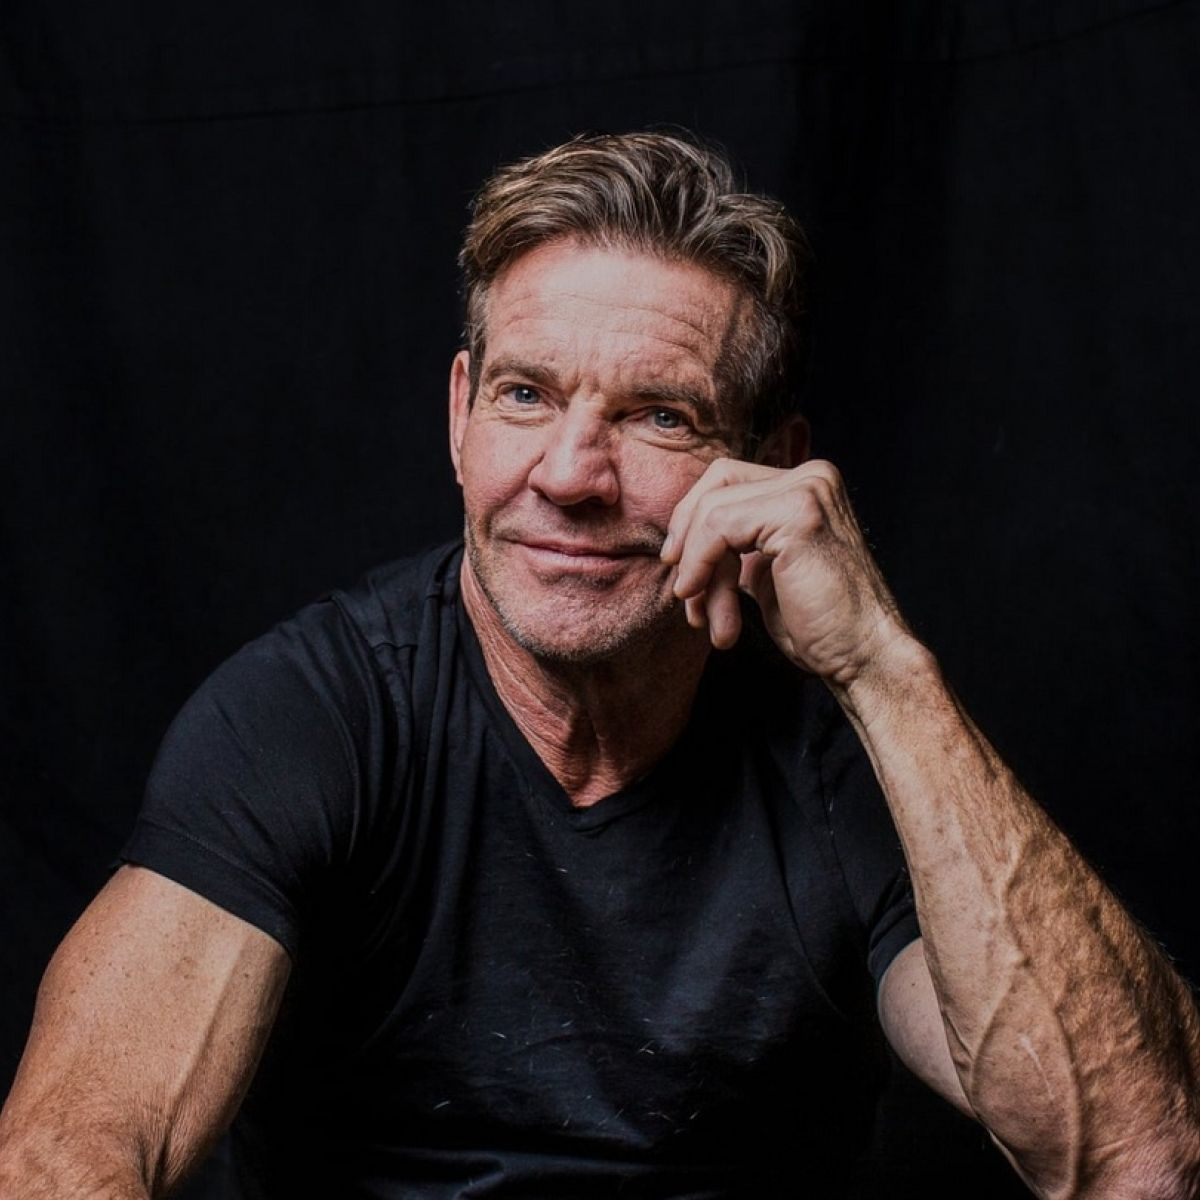 Dennis Quaid: 'I didn't go looking for someone younger'